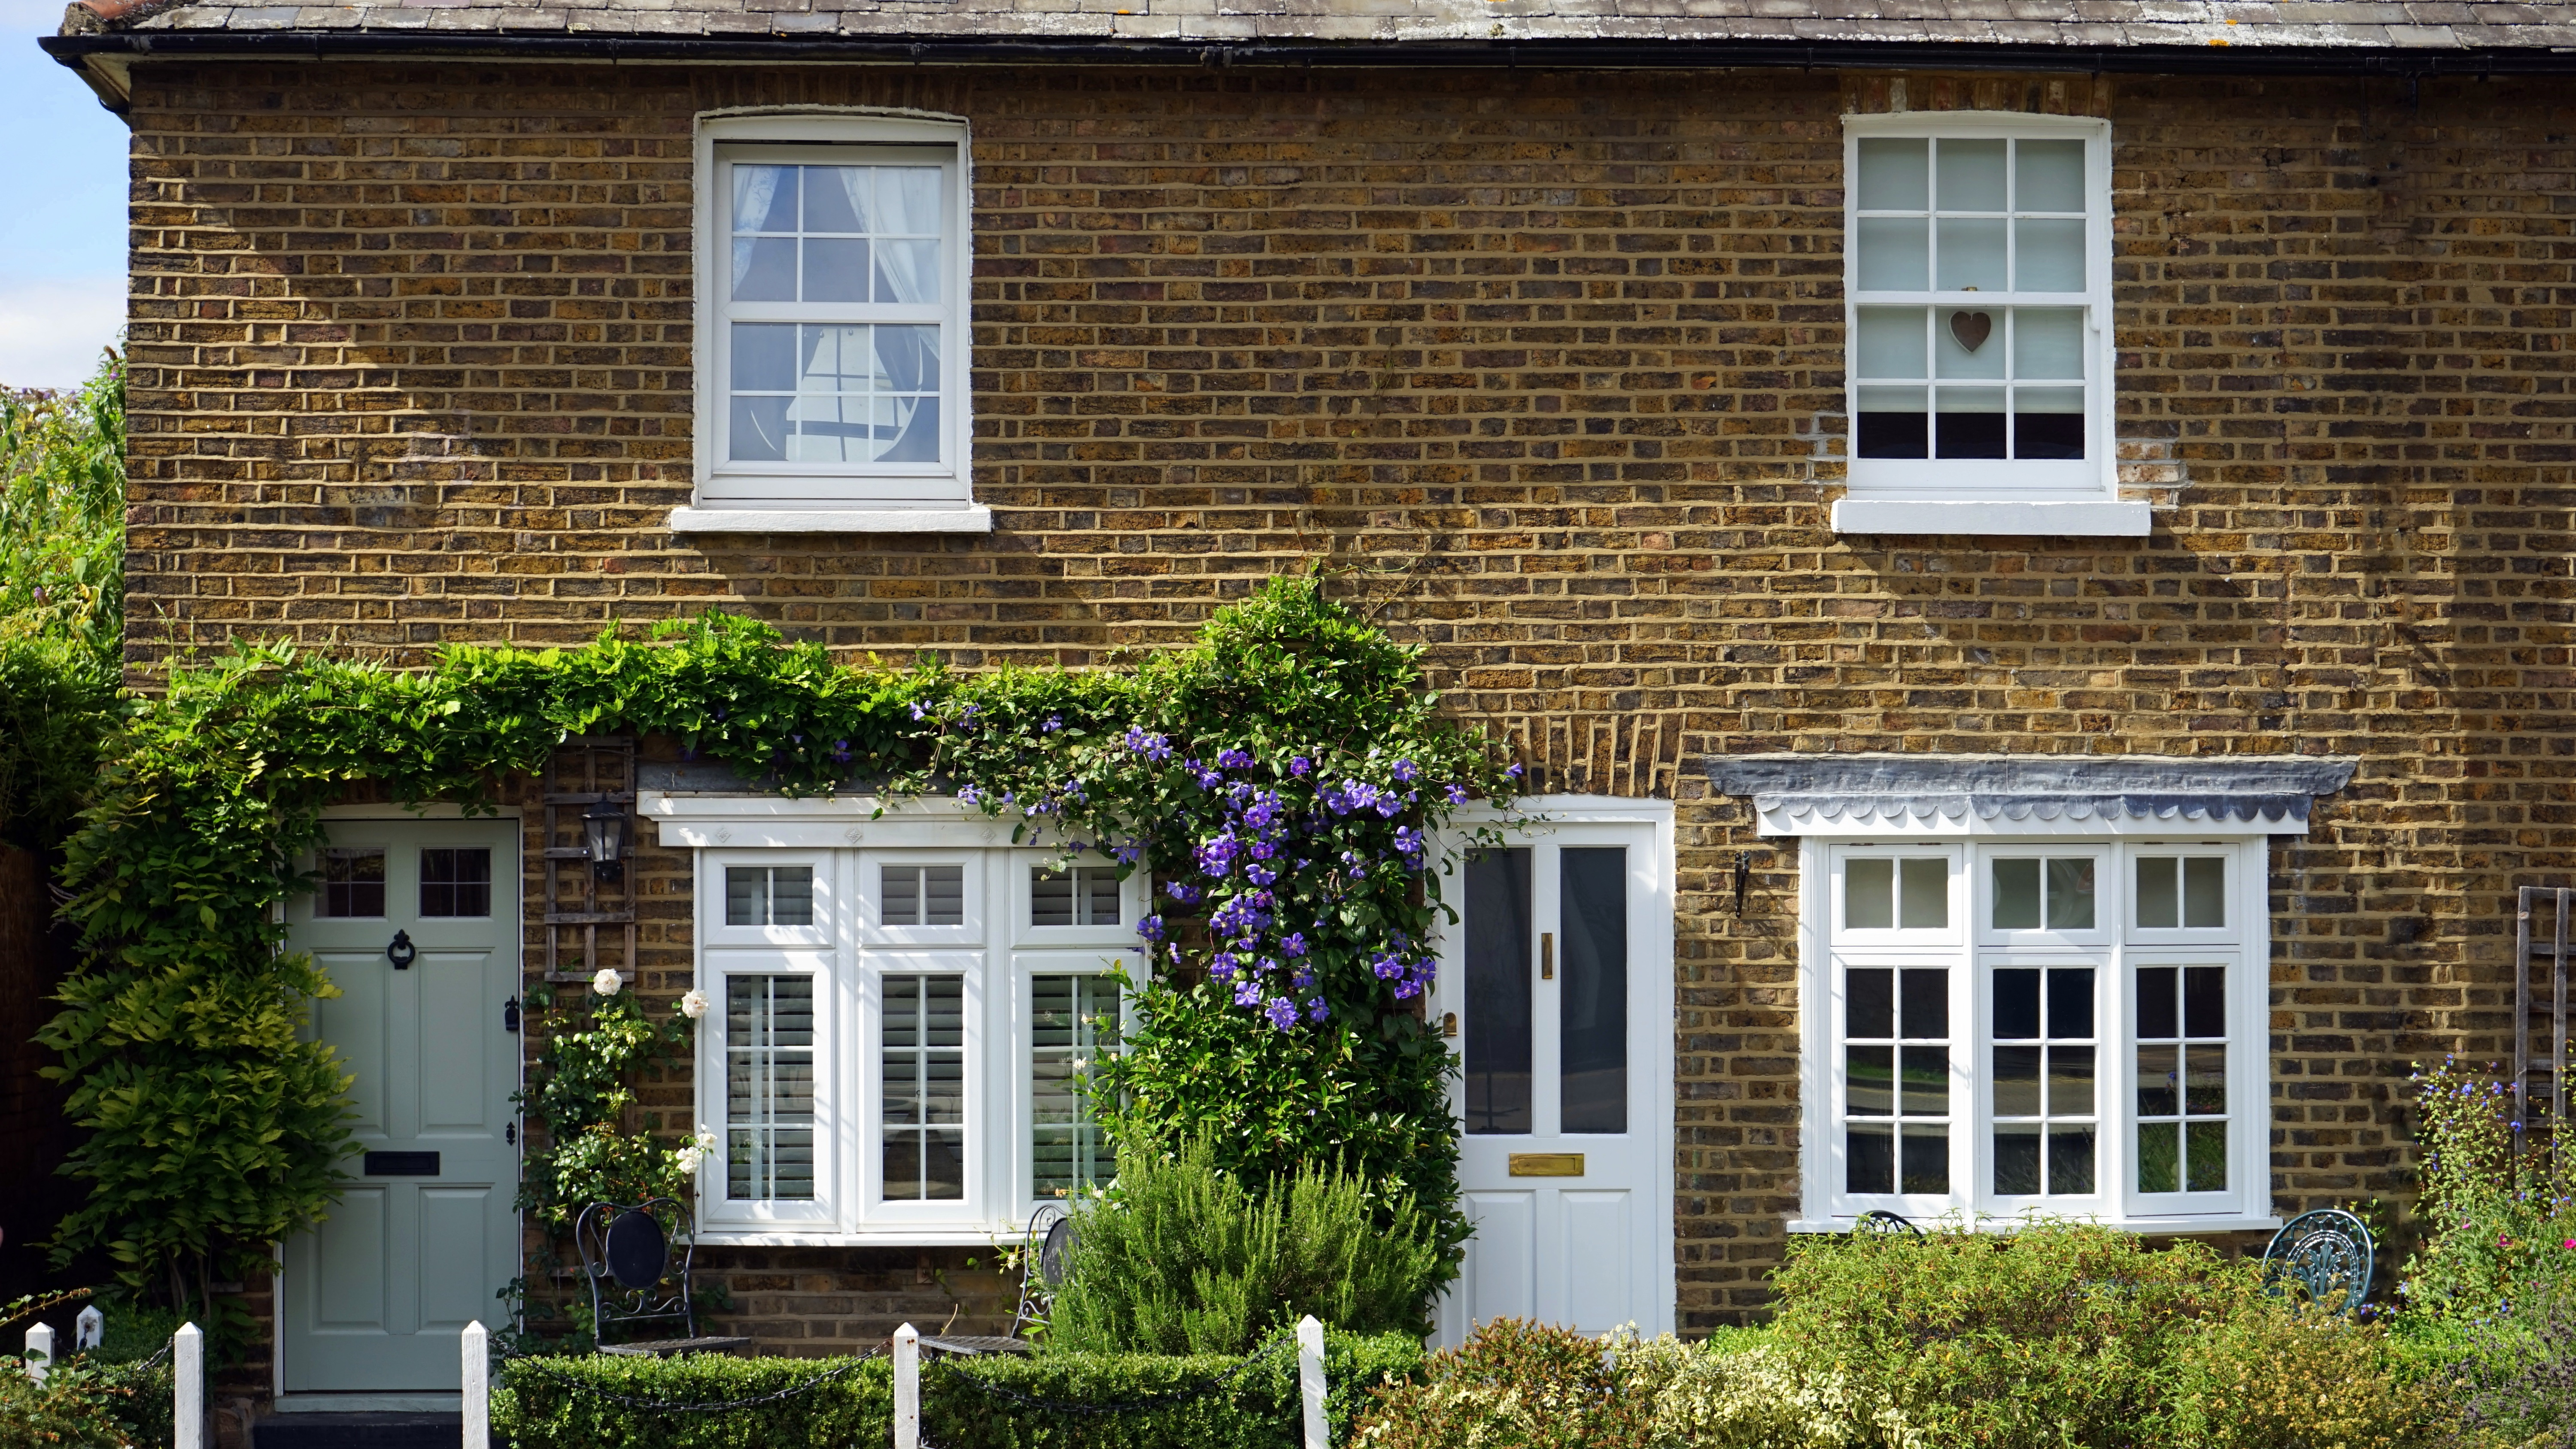 How to Make an Offer on a Property